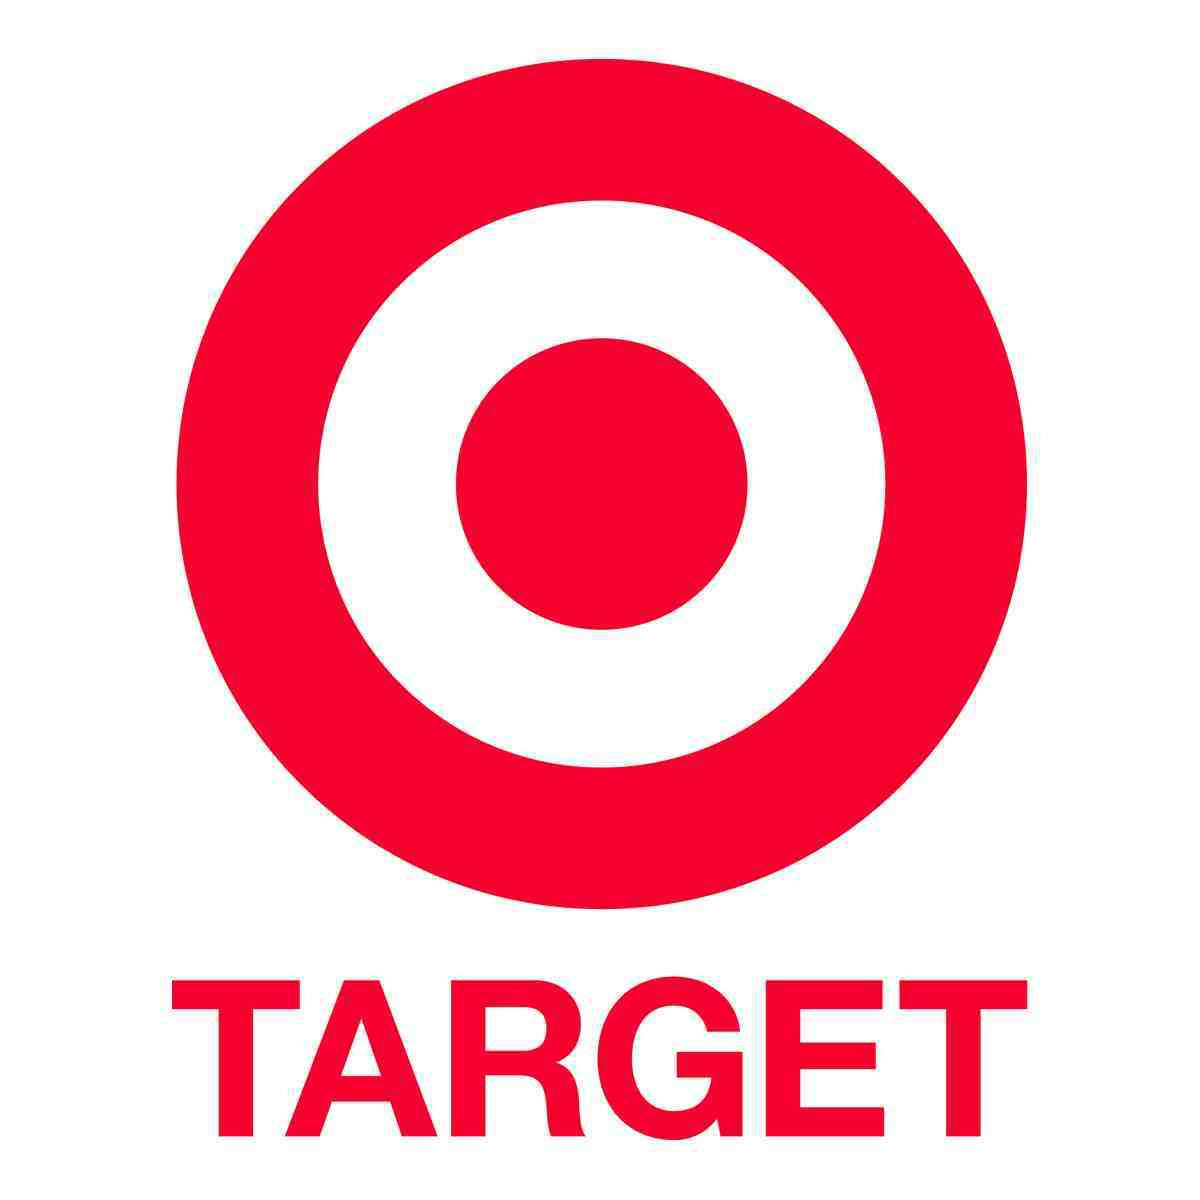 Clipart target symbol svg transparent download Picture Of Target Logo - ClipArt Best svg transparent download